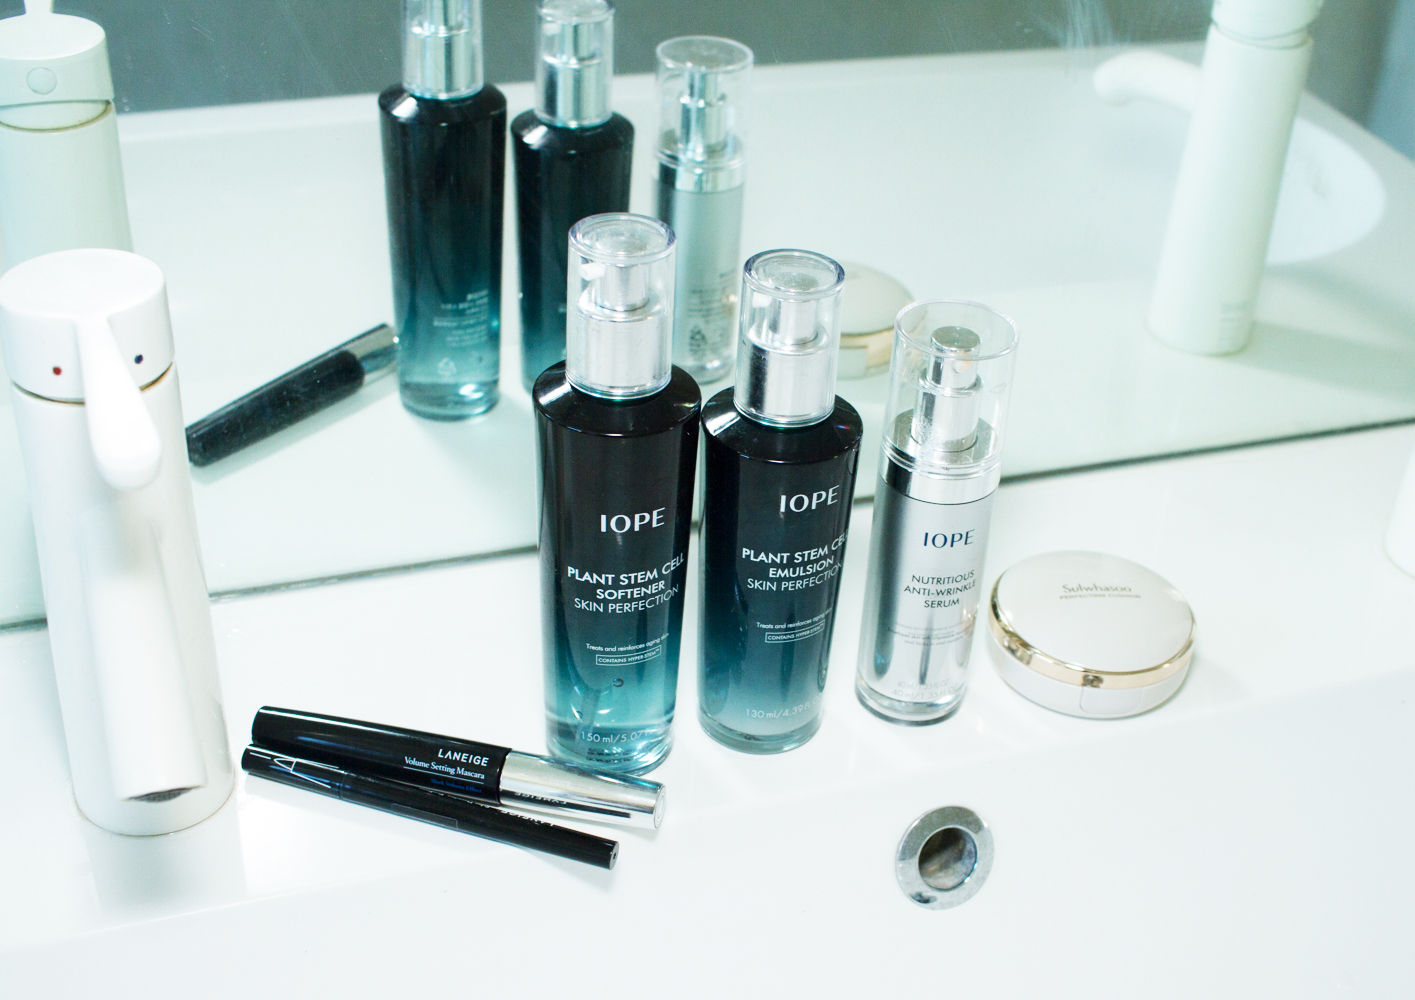 Angie's favorite beauty products